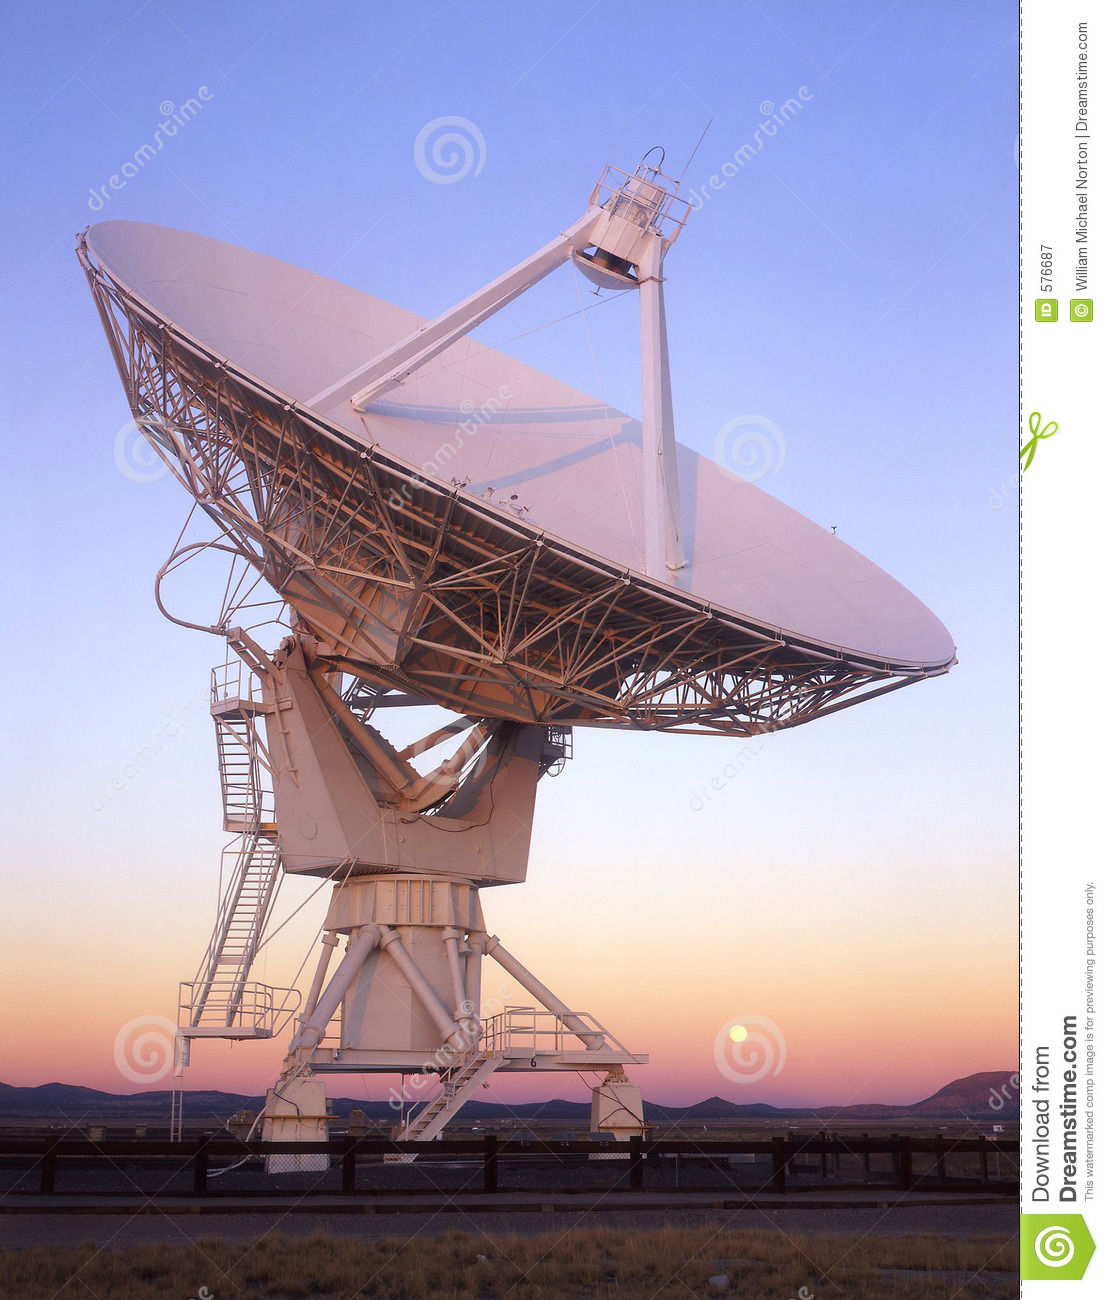 nasa satellite dish - photo #26